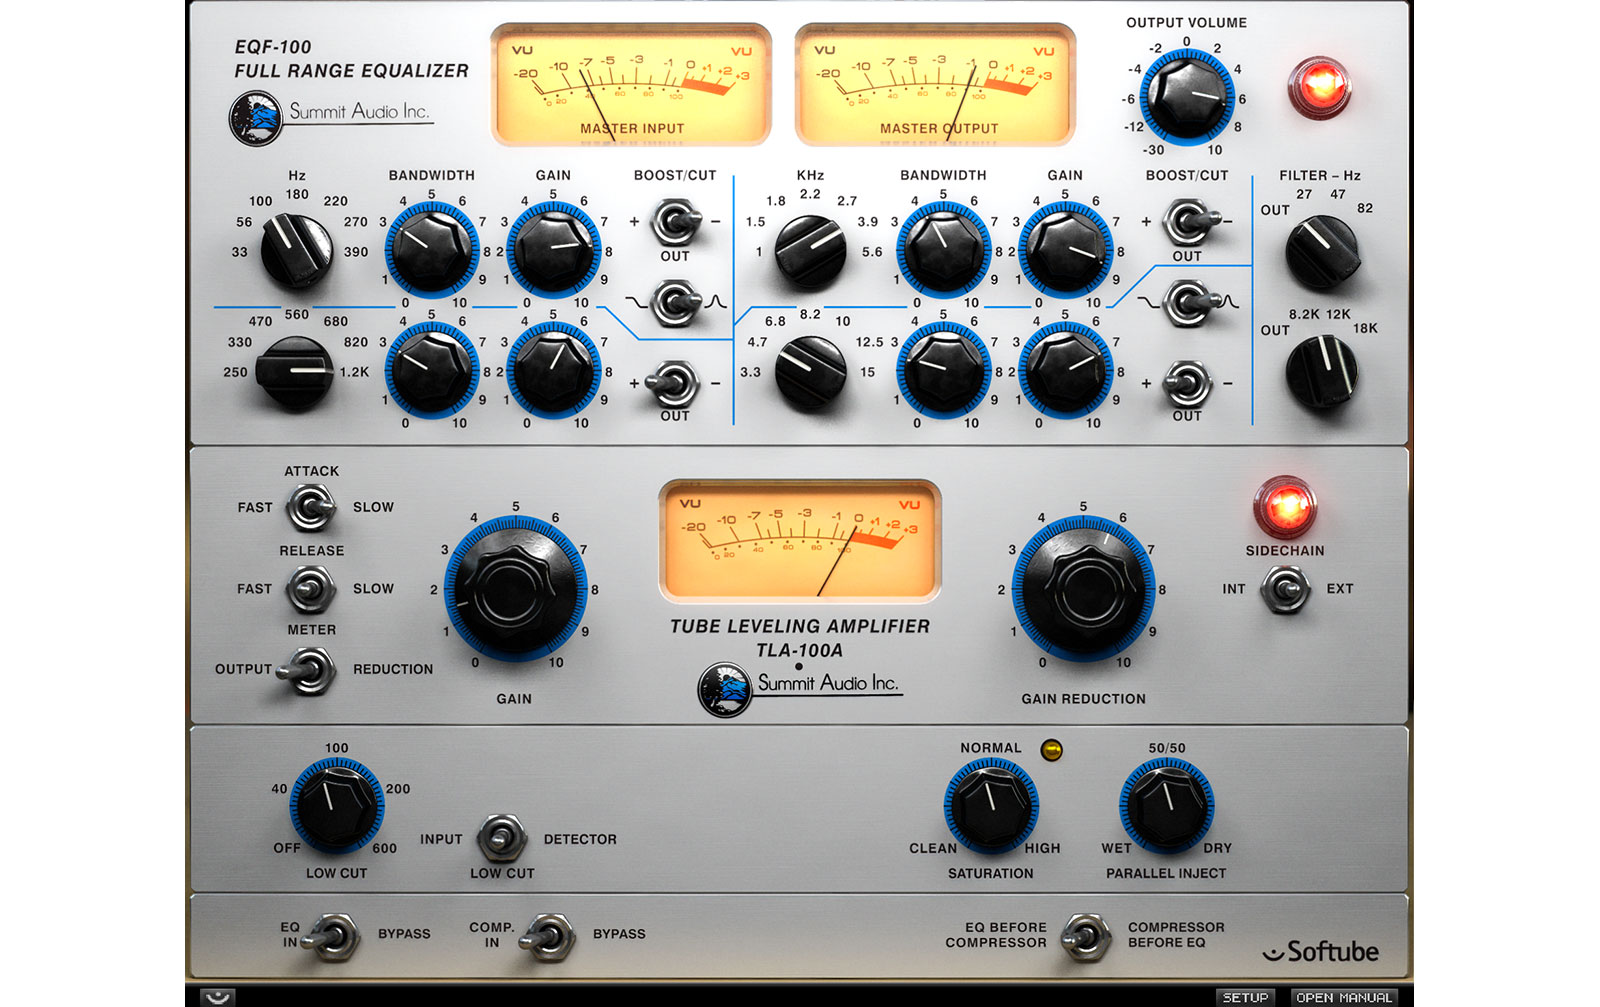 softube-summit-audio-grand-channel-esd-download-